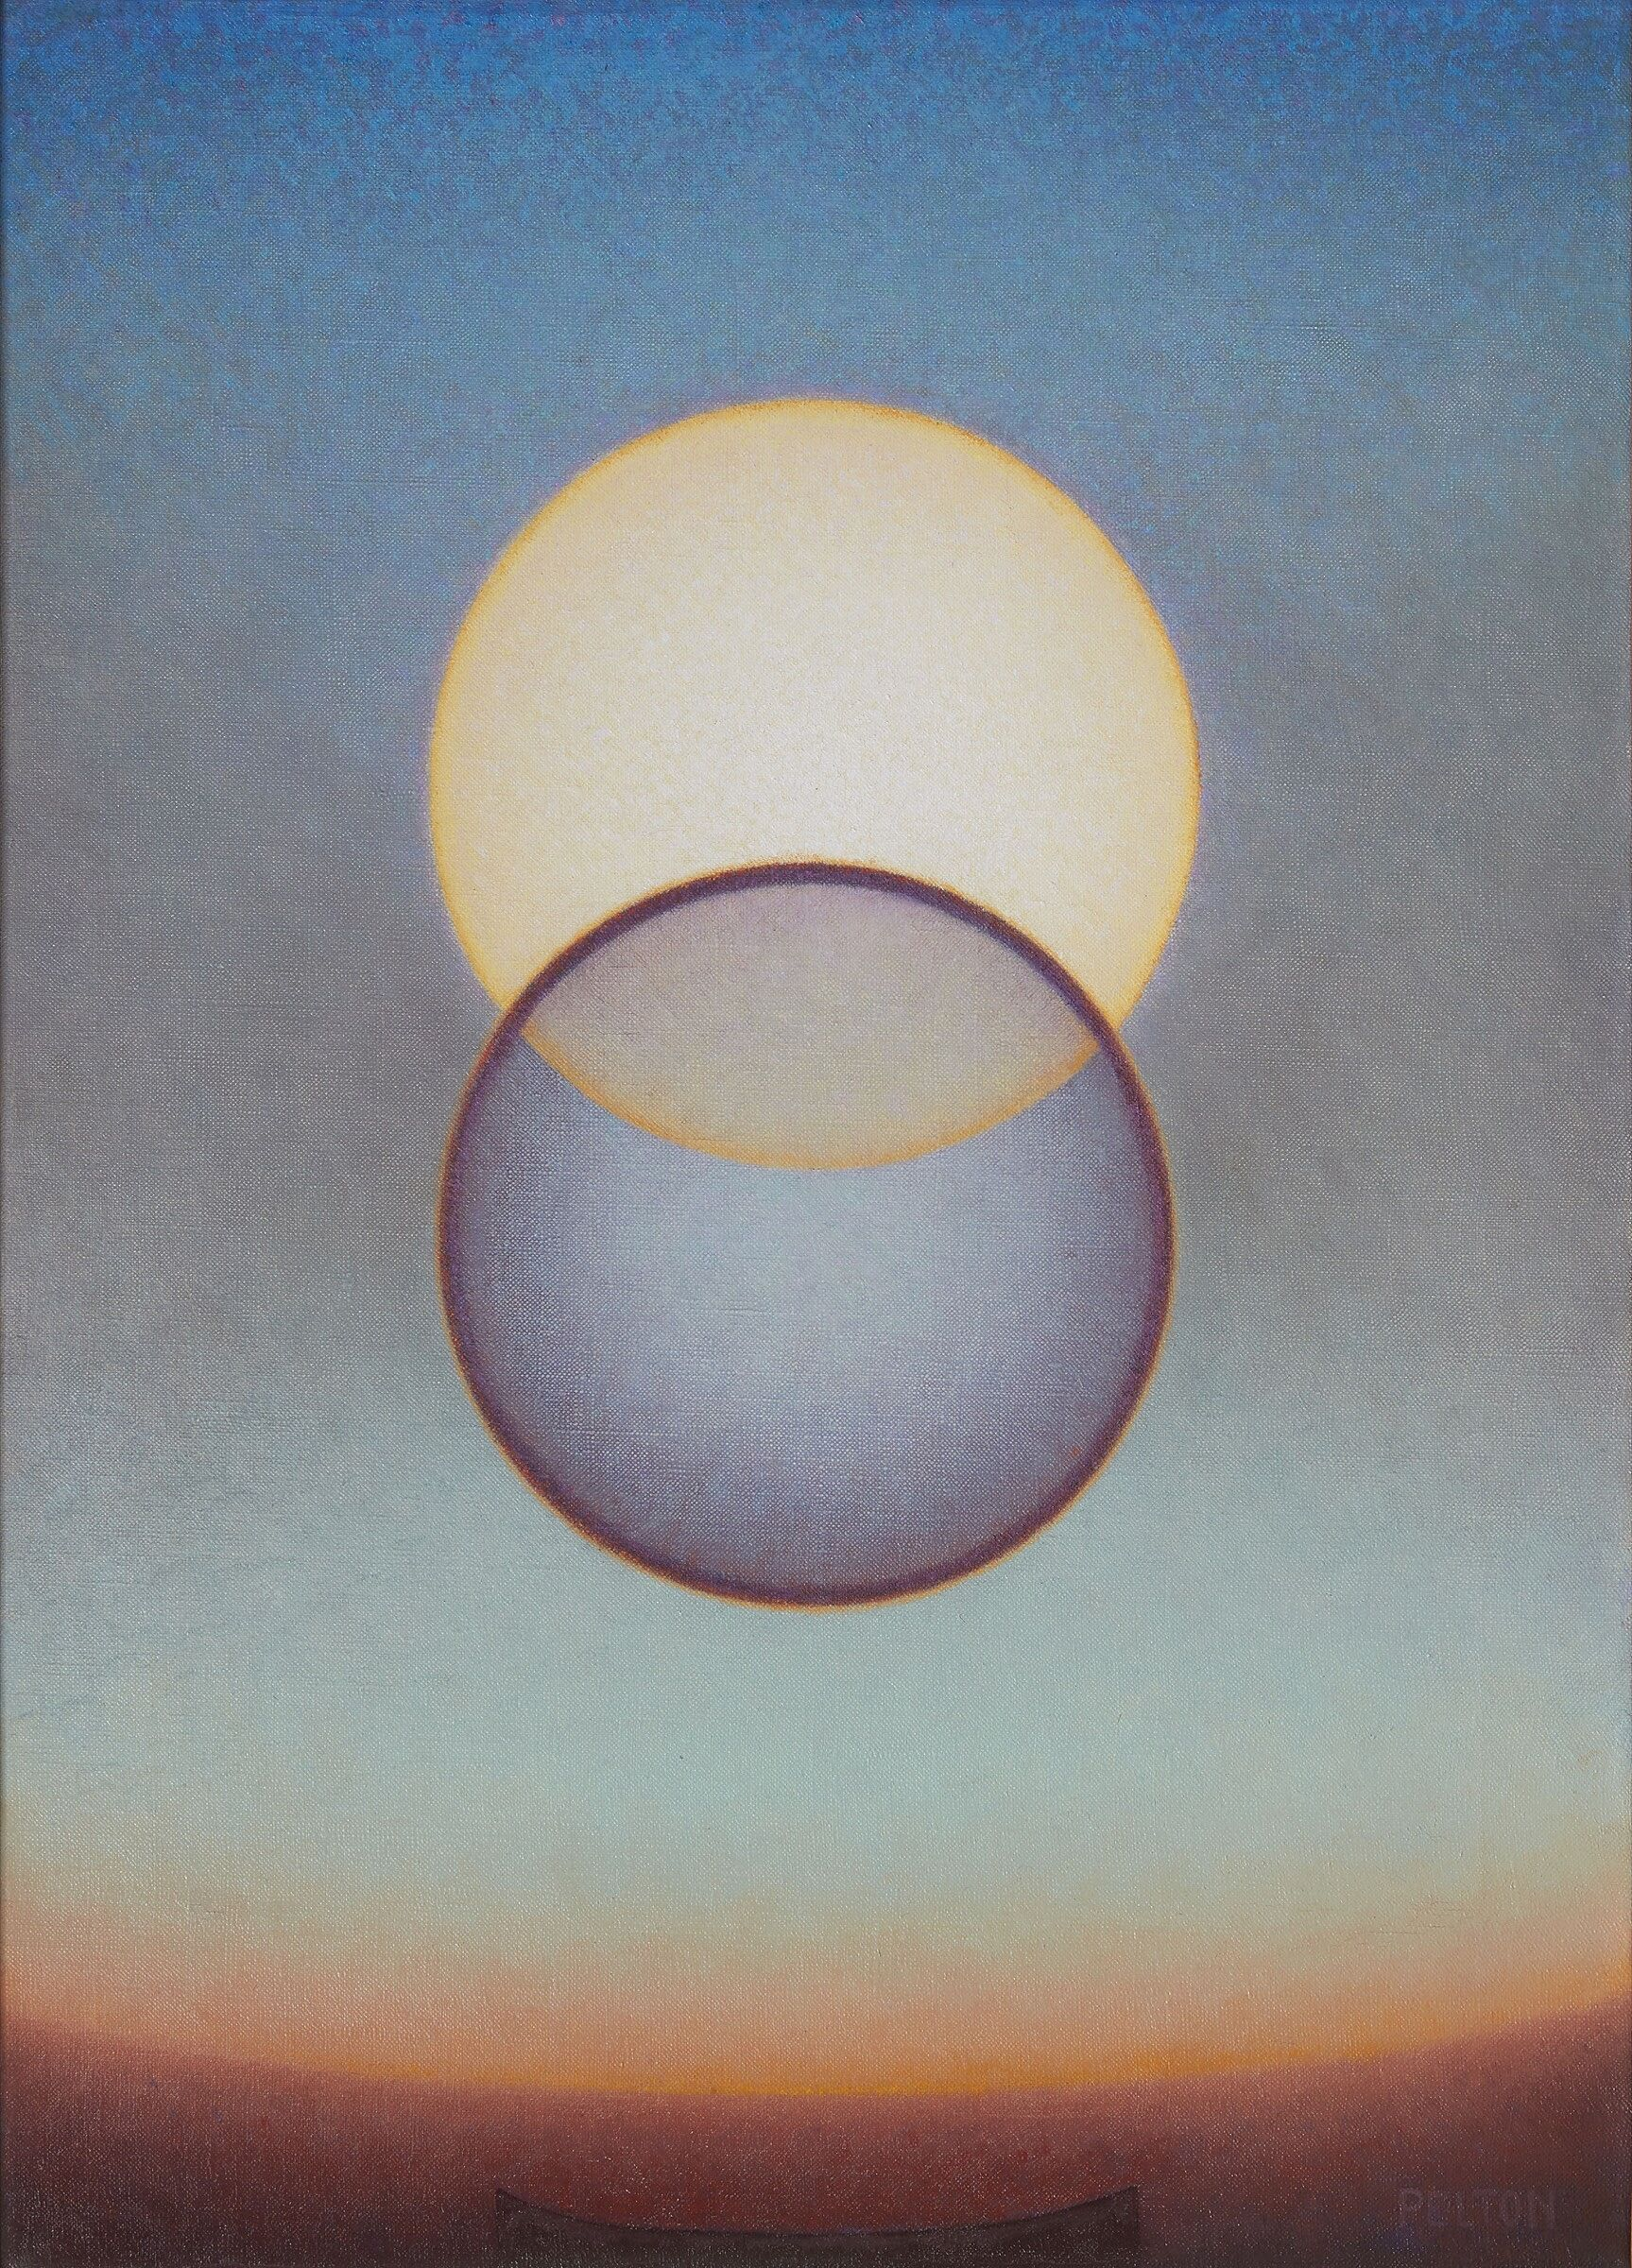 An abstract painting featuring two intersecting circles.